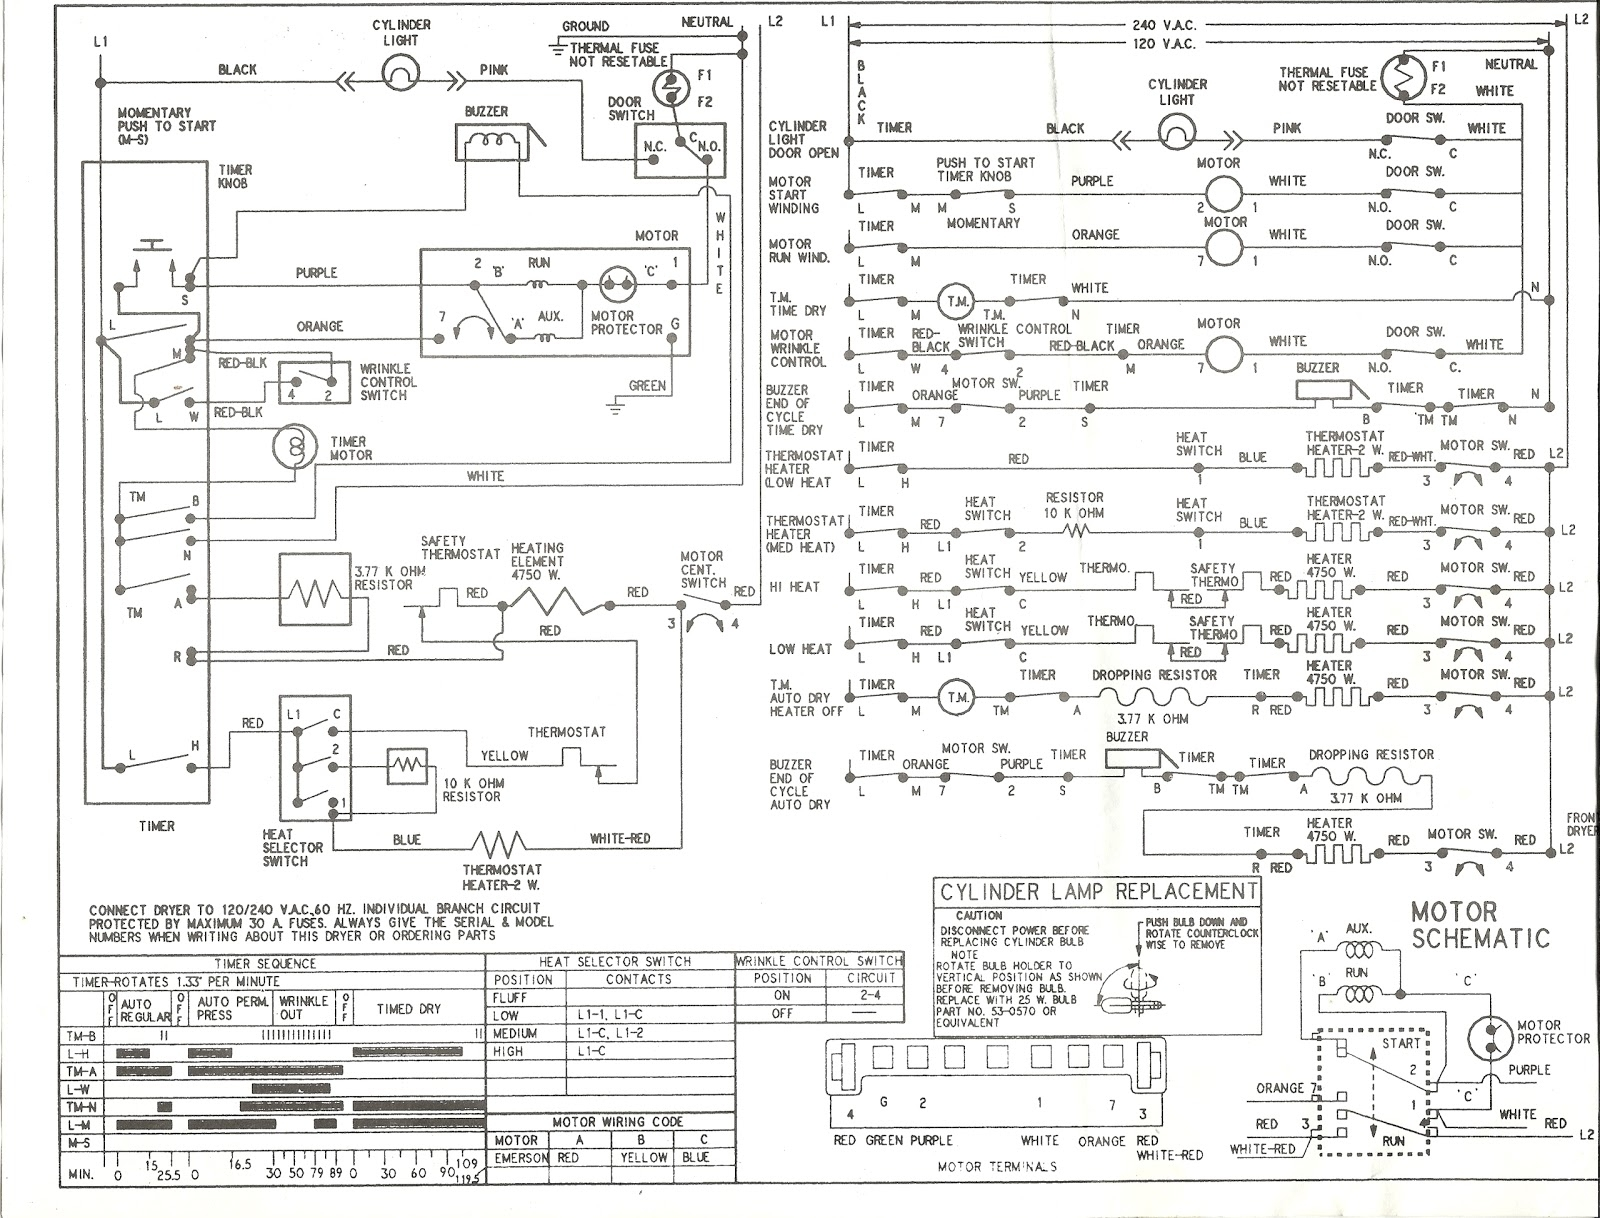 kenmore washer wiring diagram on wiring diagram parts wiring for kenmore 80 series washer parts diagram 3800 series 2 wiring diagram gm ecu pinout \u2022 wiring diagrams j  at webbmarketing.co